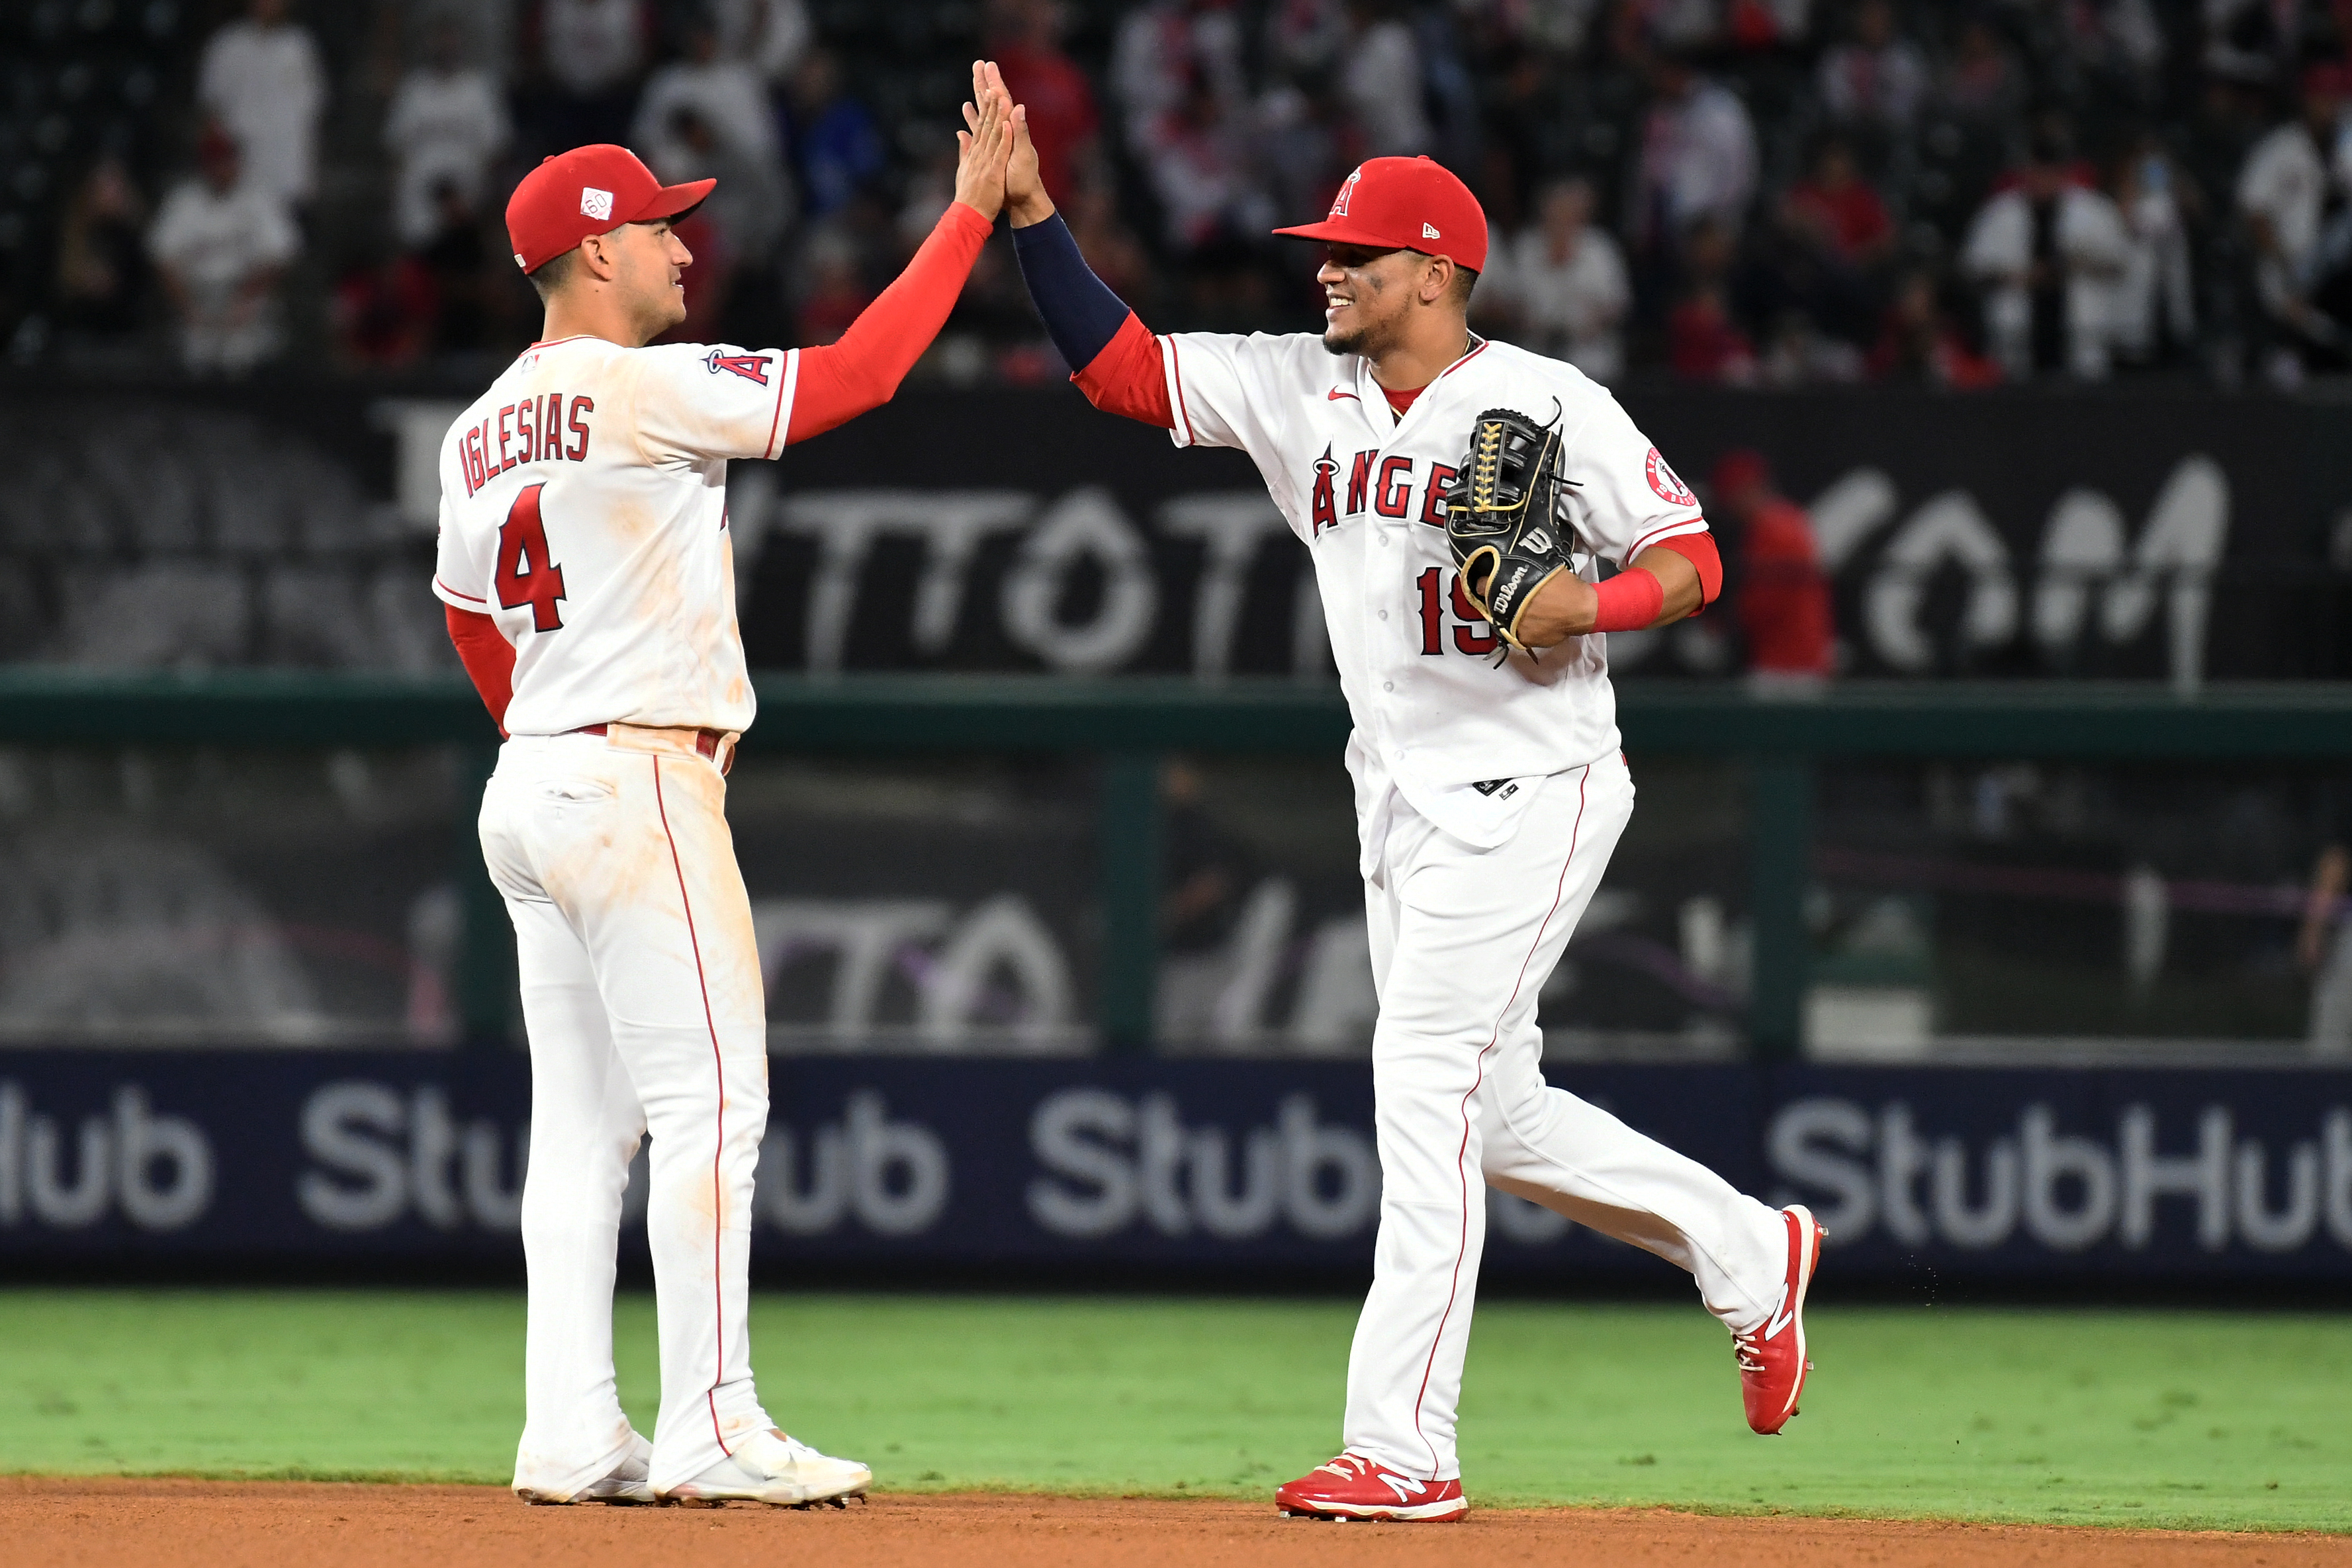 Los Angeles Angels vs Los Angeles Dodgers Prediction, 8/6/2021 MLB Pick, Tips and Odds